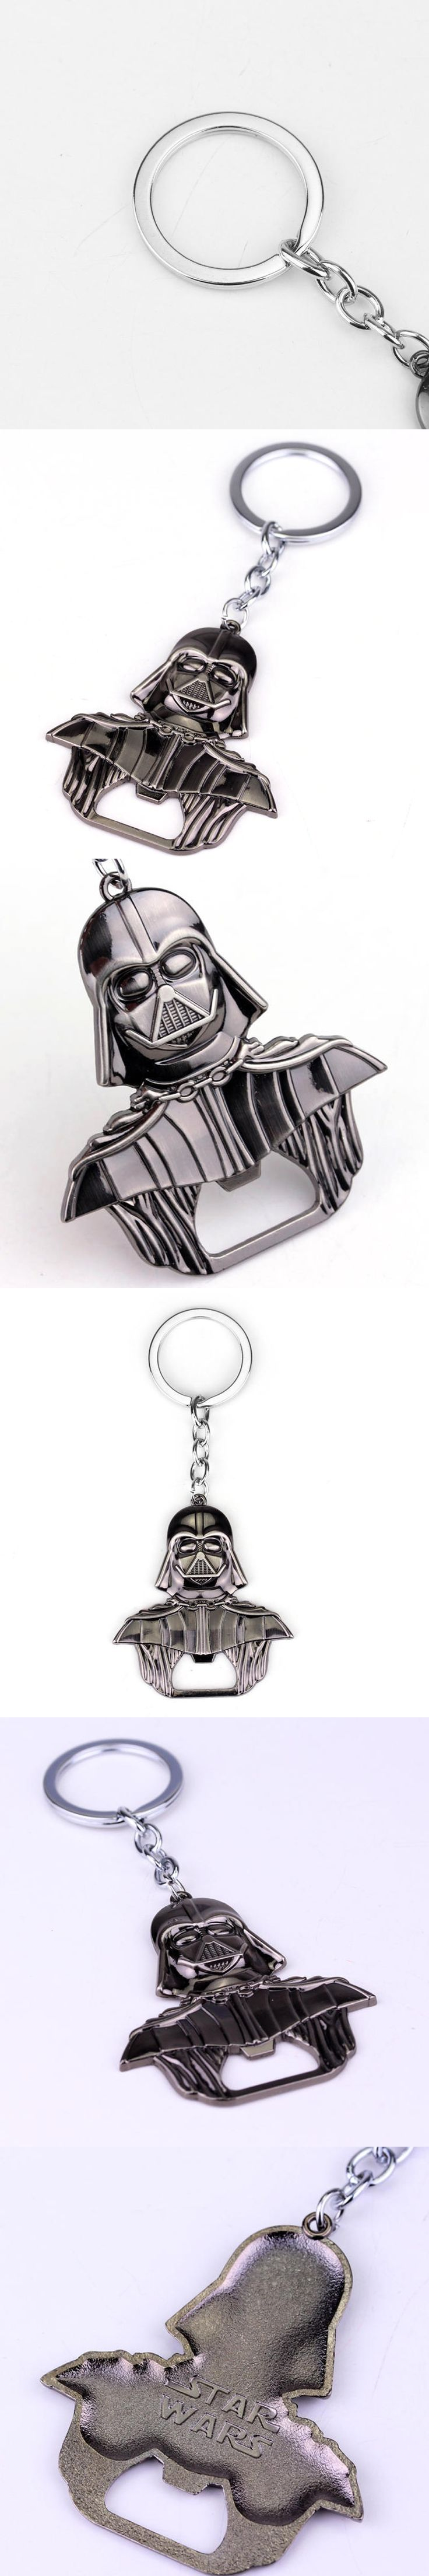 New style star wars darth vader keychain bottle opener keyring Alloy metal figure black series key chain ring porte clef for fan